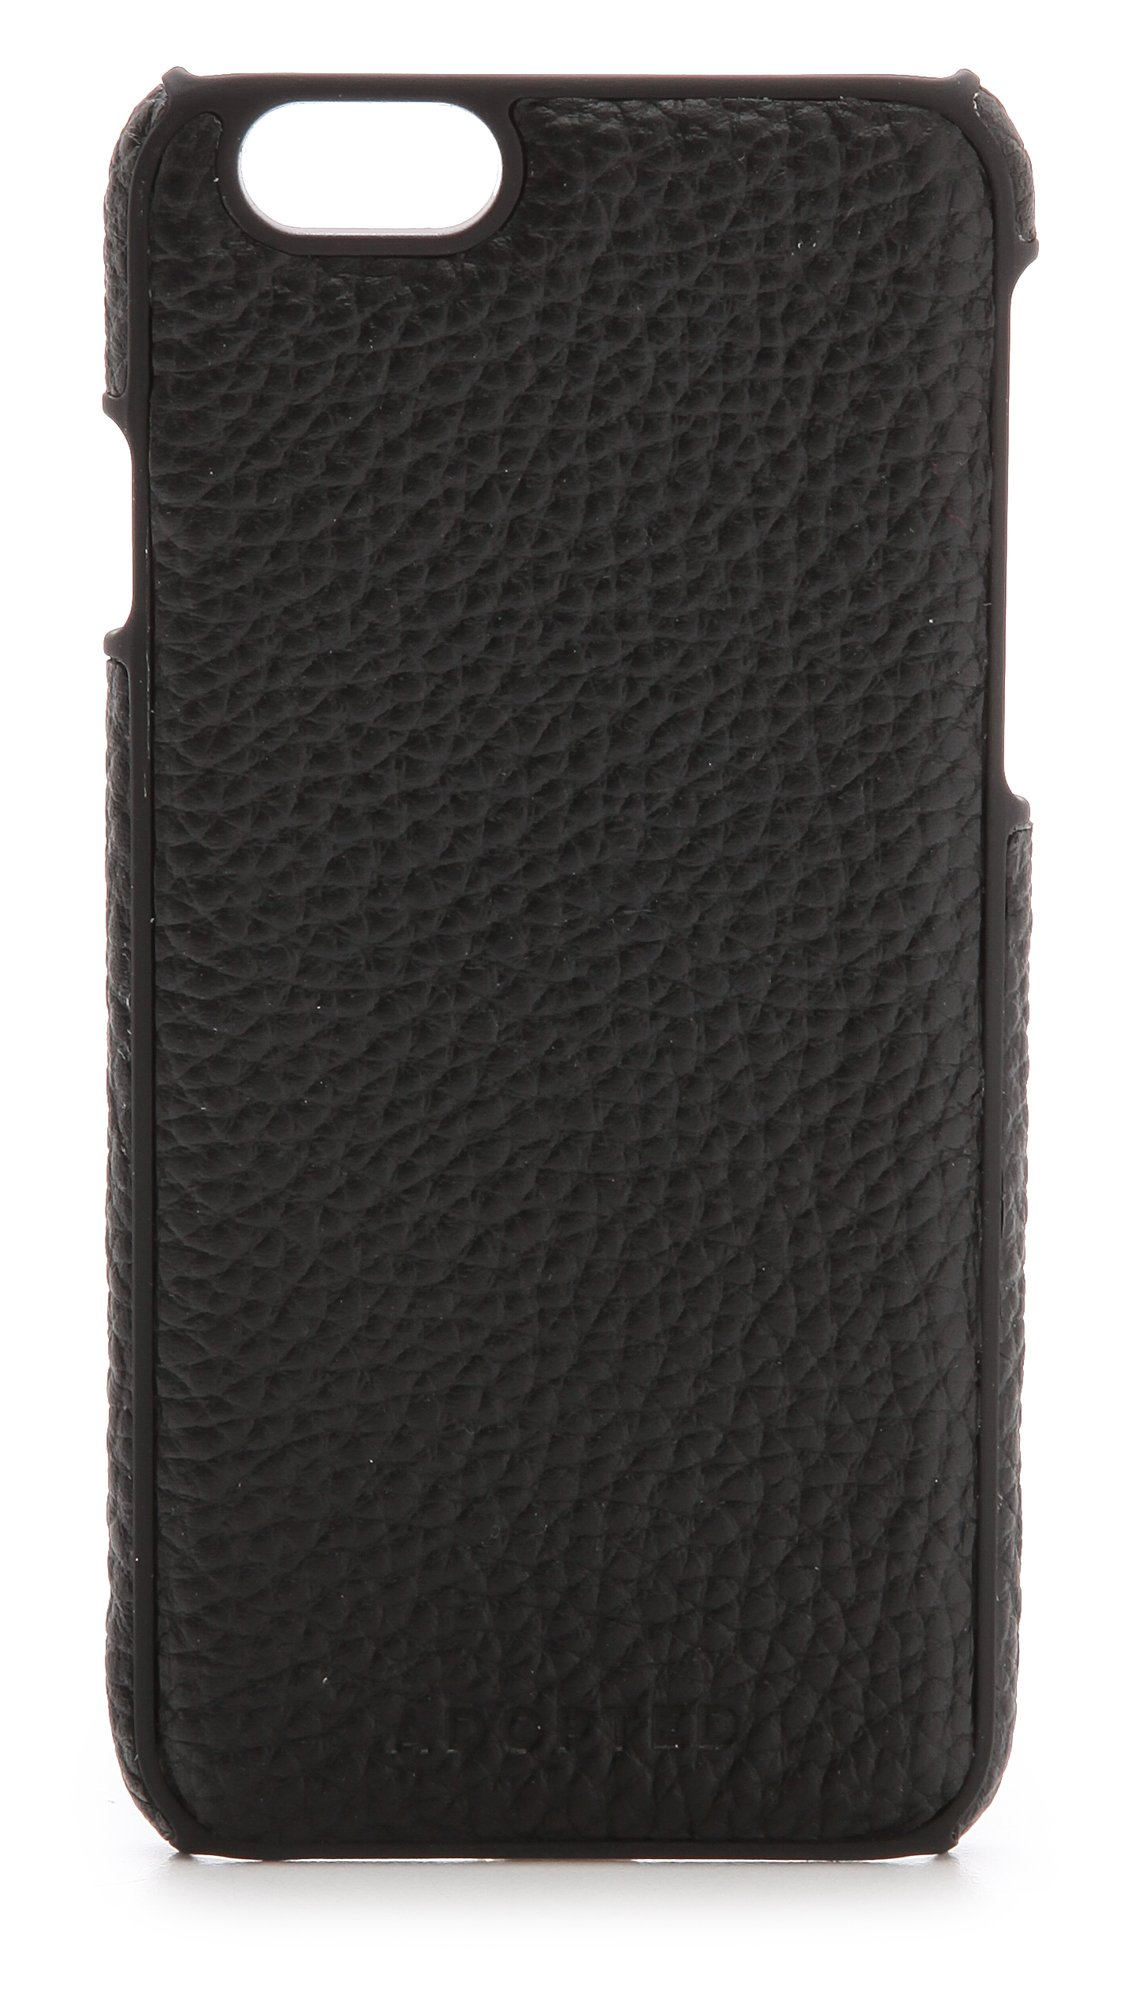 new arrival 91f41 f1402 Adopted - Leather Wrap Case Iphone 6 - Black/Black - Lyst